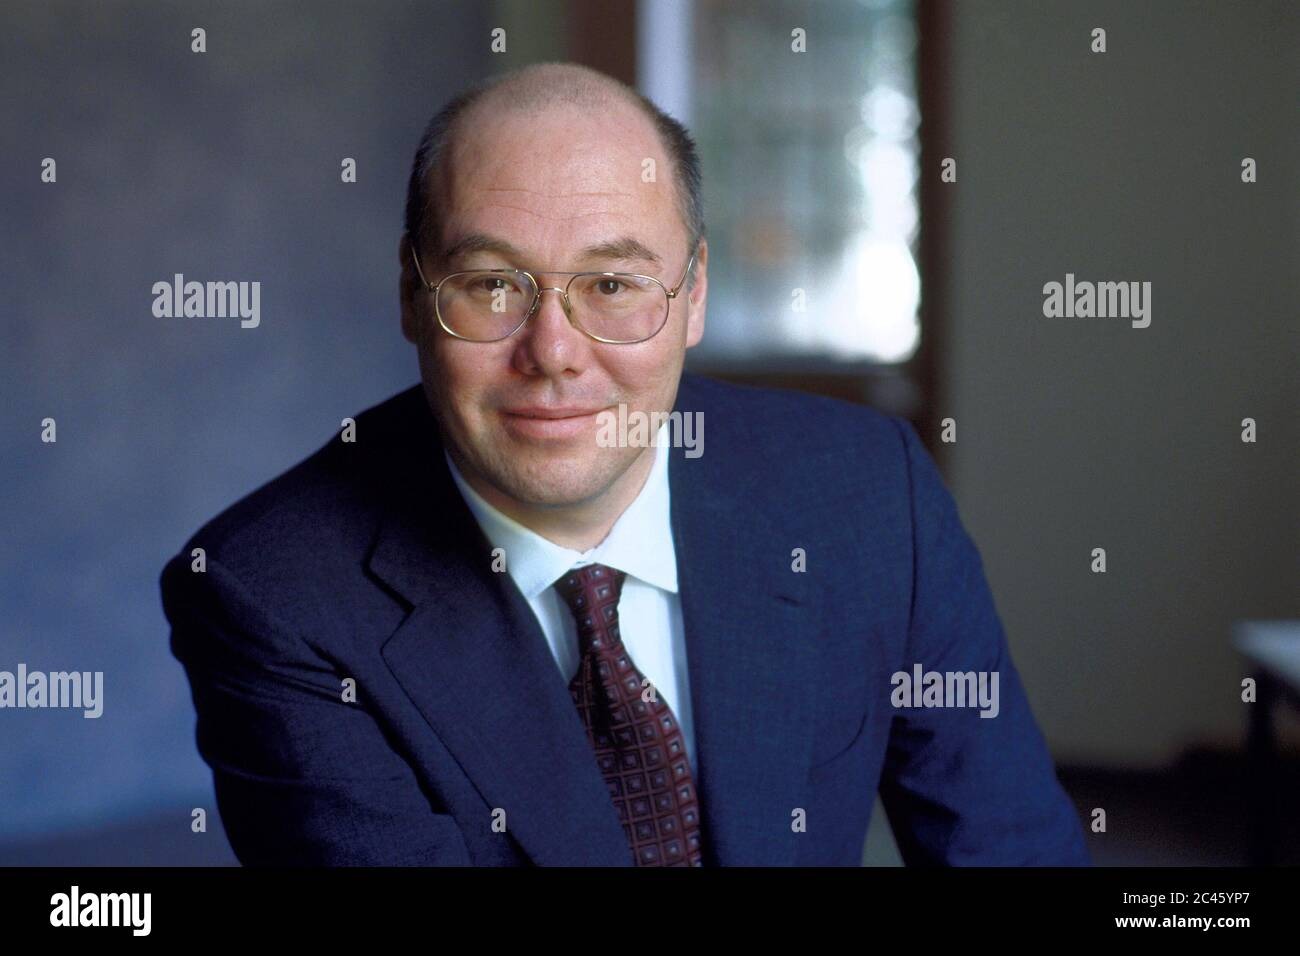 Dr. Metin Colpan - CEO of QIAGEN AG Stock Photo